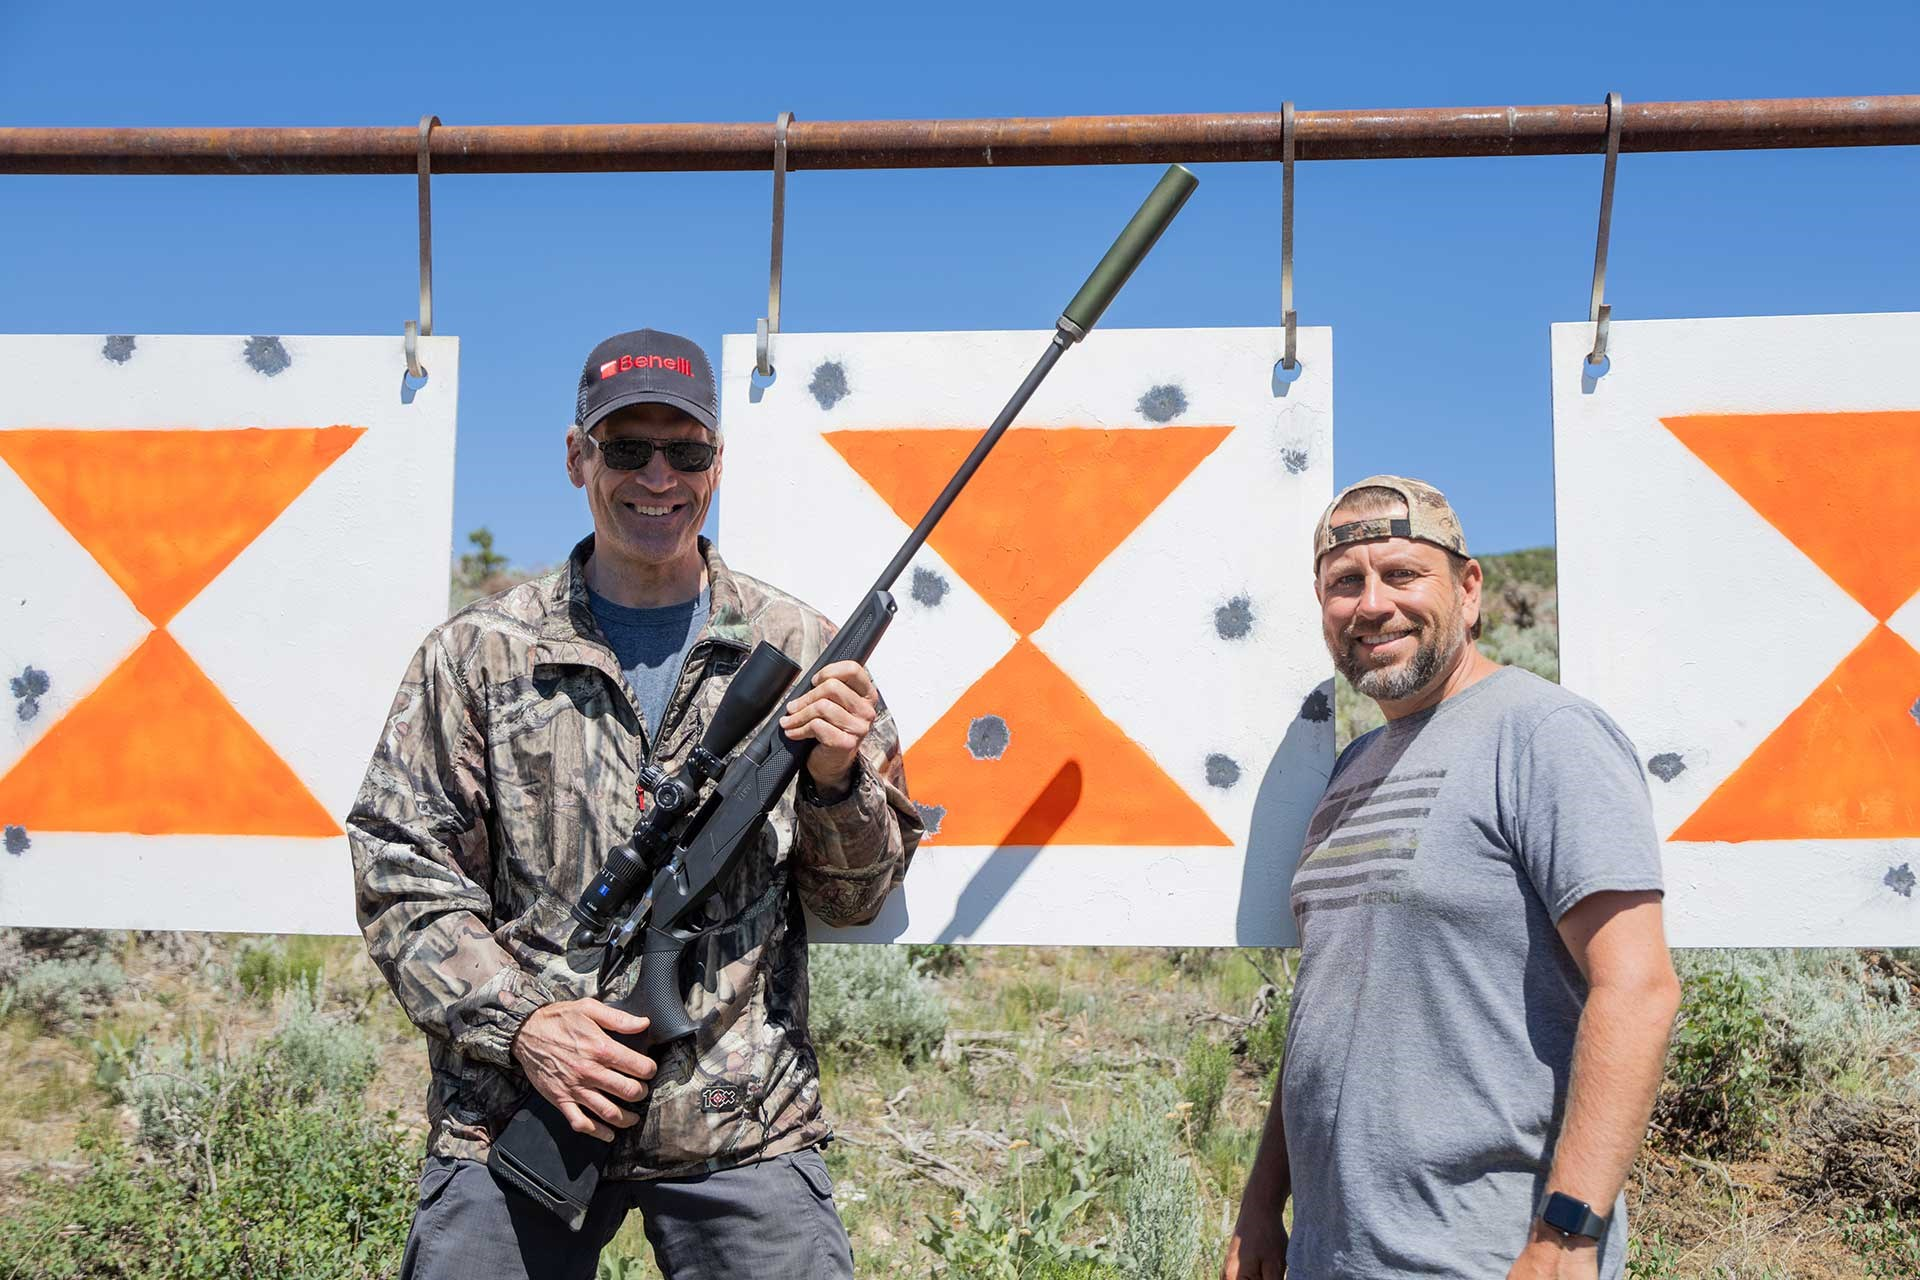 Two men stand next to a steel target showing impact marks. One man is holding a Benelli Lupo rifle with a mounted suppressor.